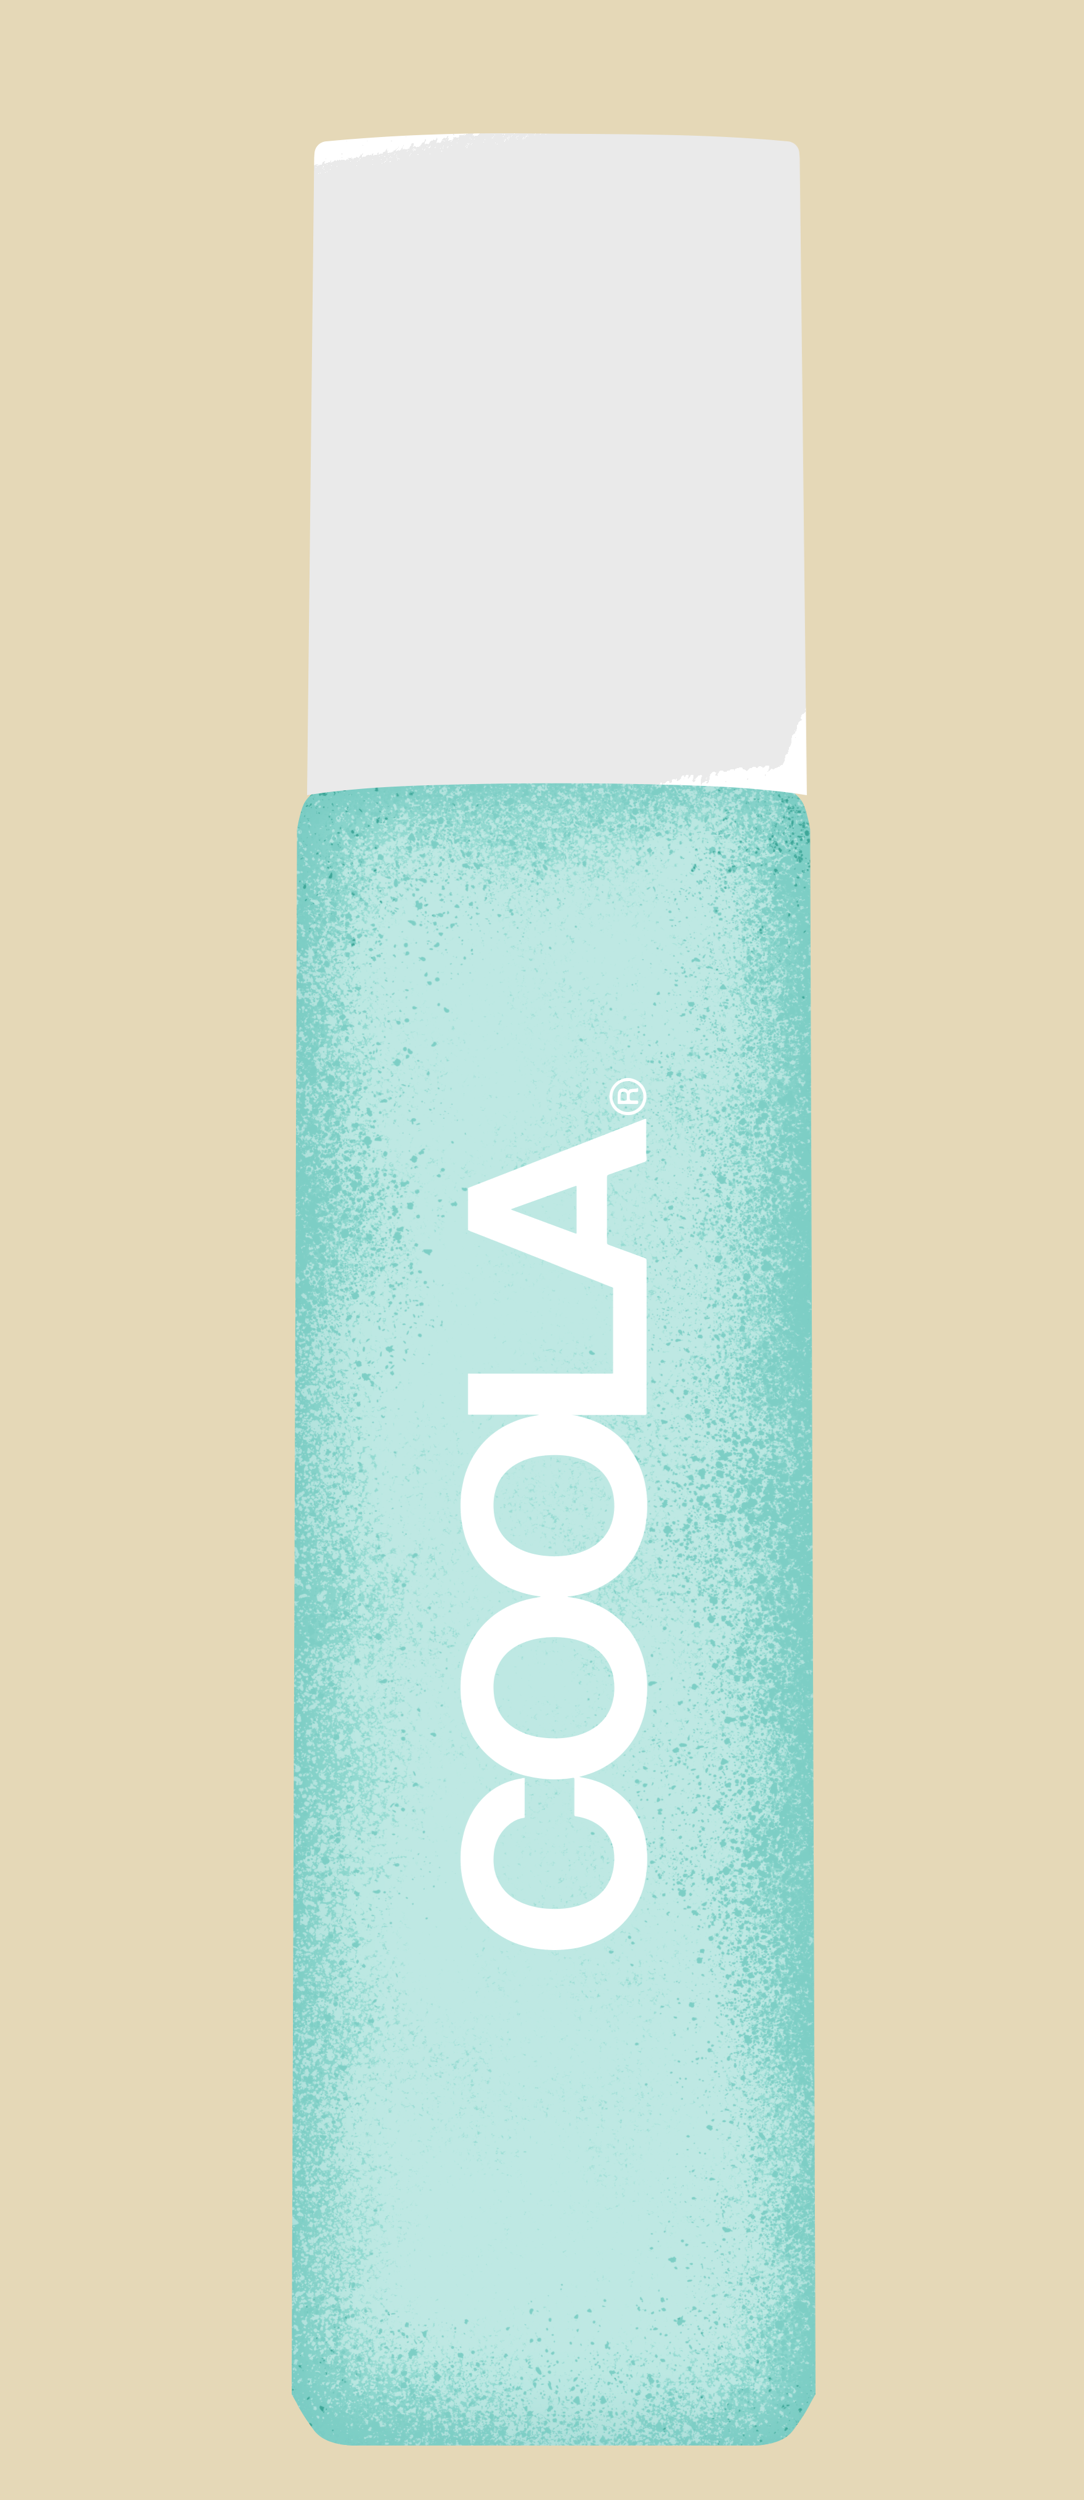 wh_01_06_coola.png